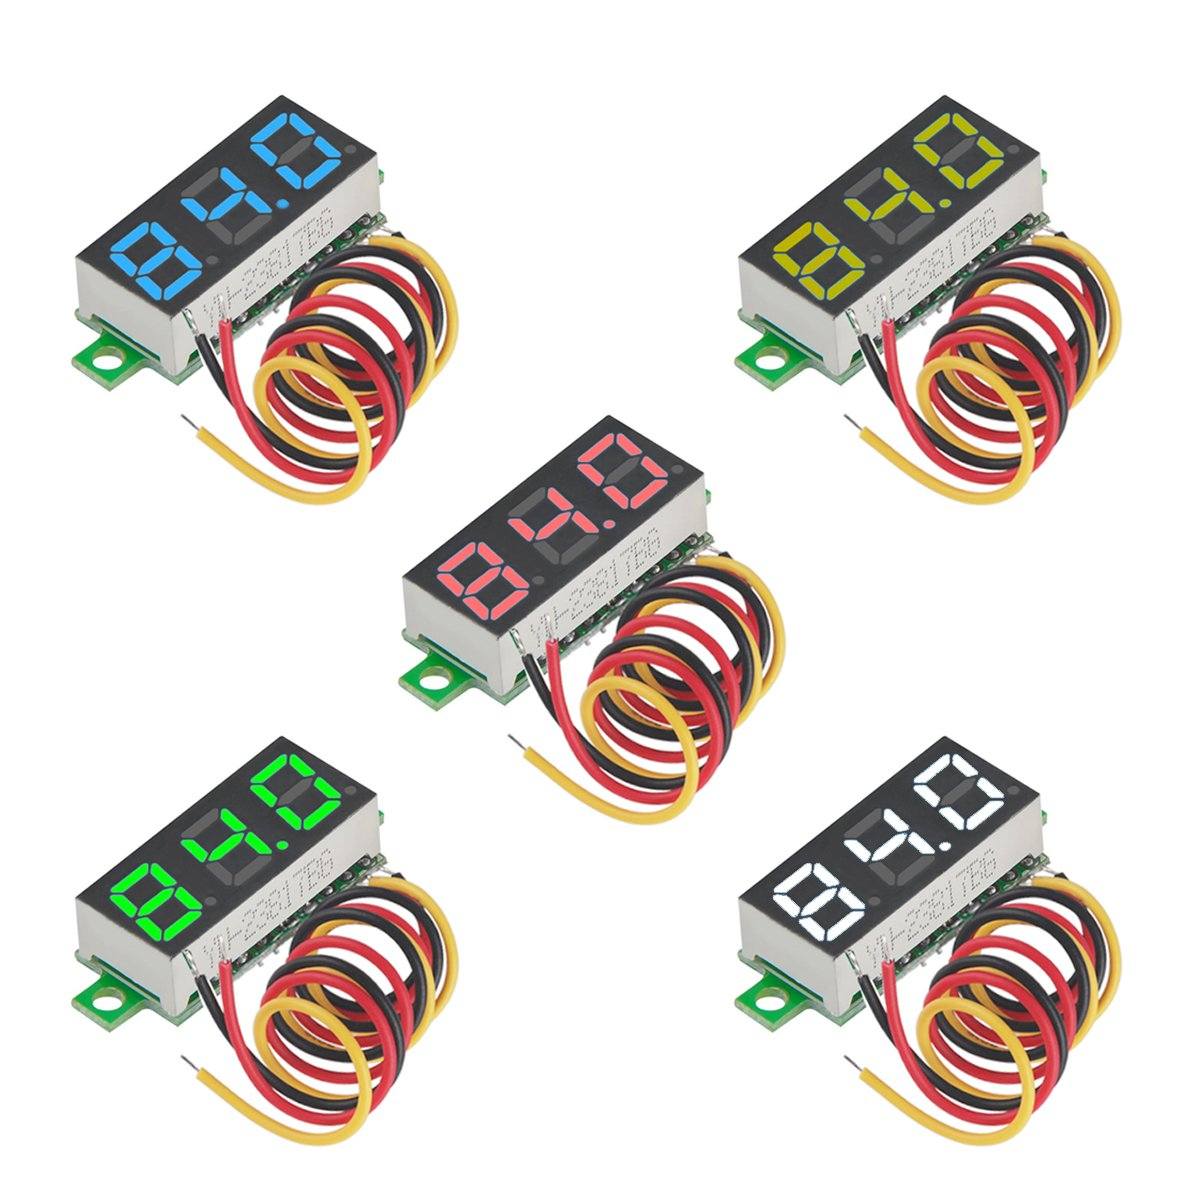 MakerFocus 5pcs Mini Digital Voltmeter DC 0.28 Inch Three-Line DC 0-100V Mini Digital Voltmeter Gauge Tester LED Display Reverse Polarity Protection and Accurate Pressure Measurement 5 Colours by MakerFocus (Image #1)